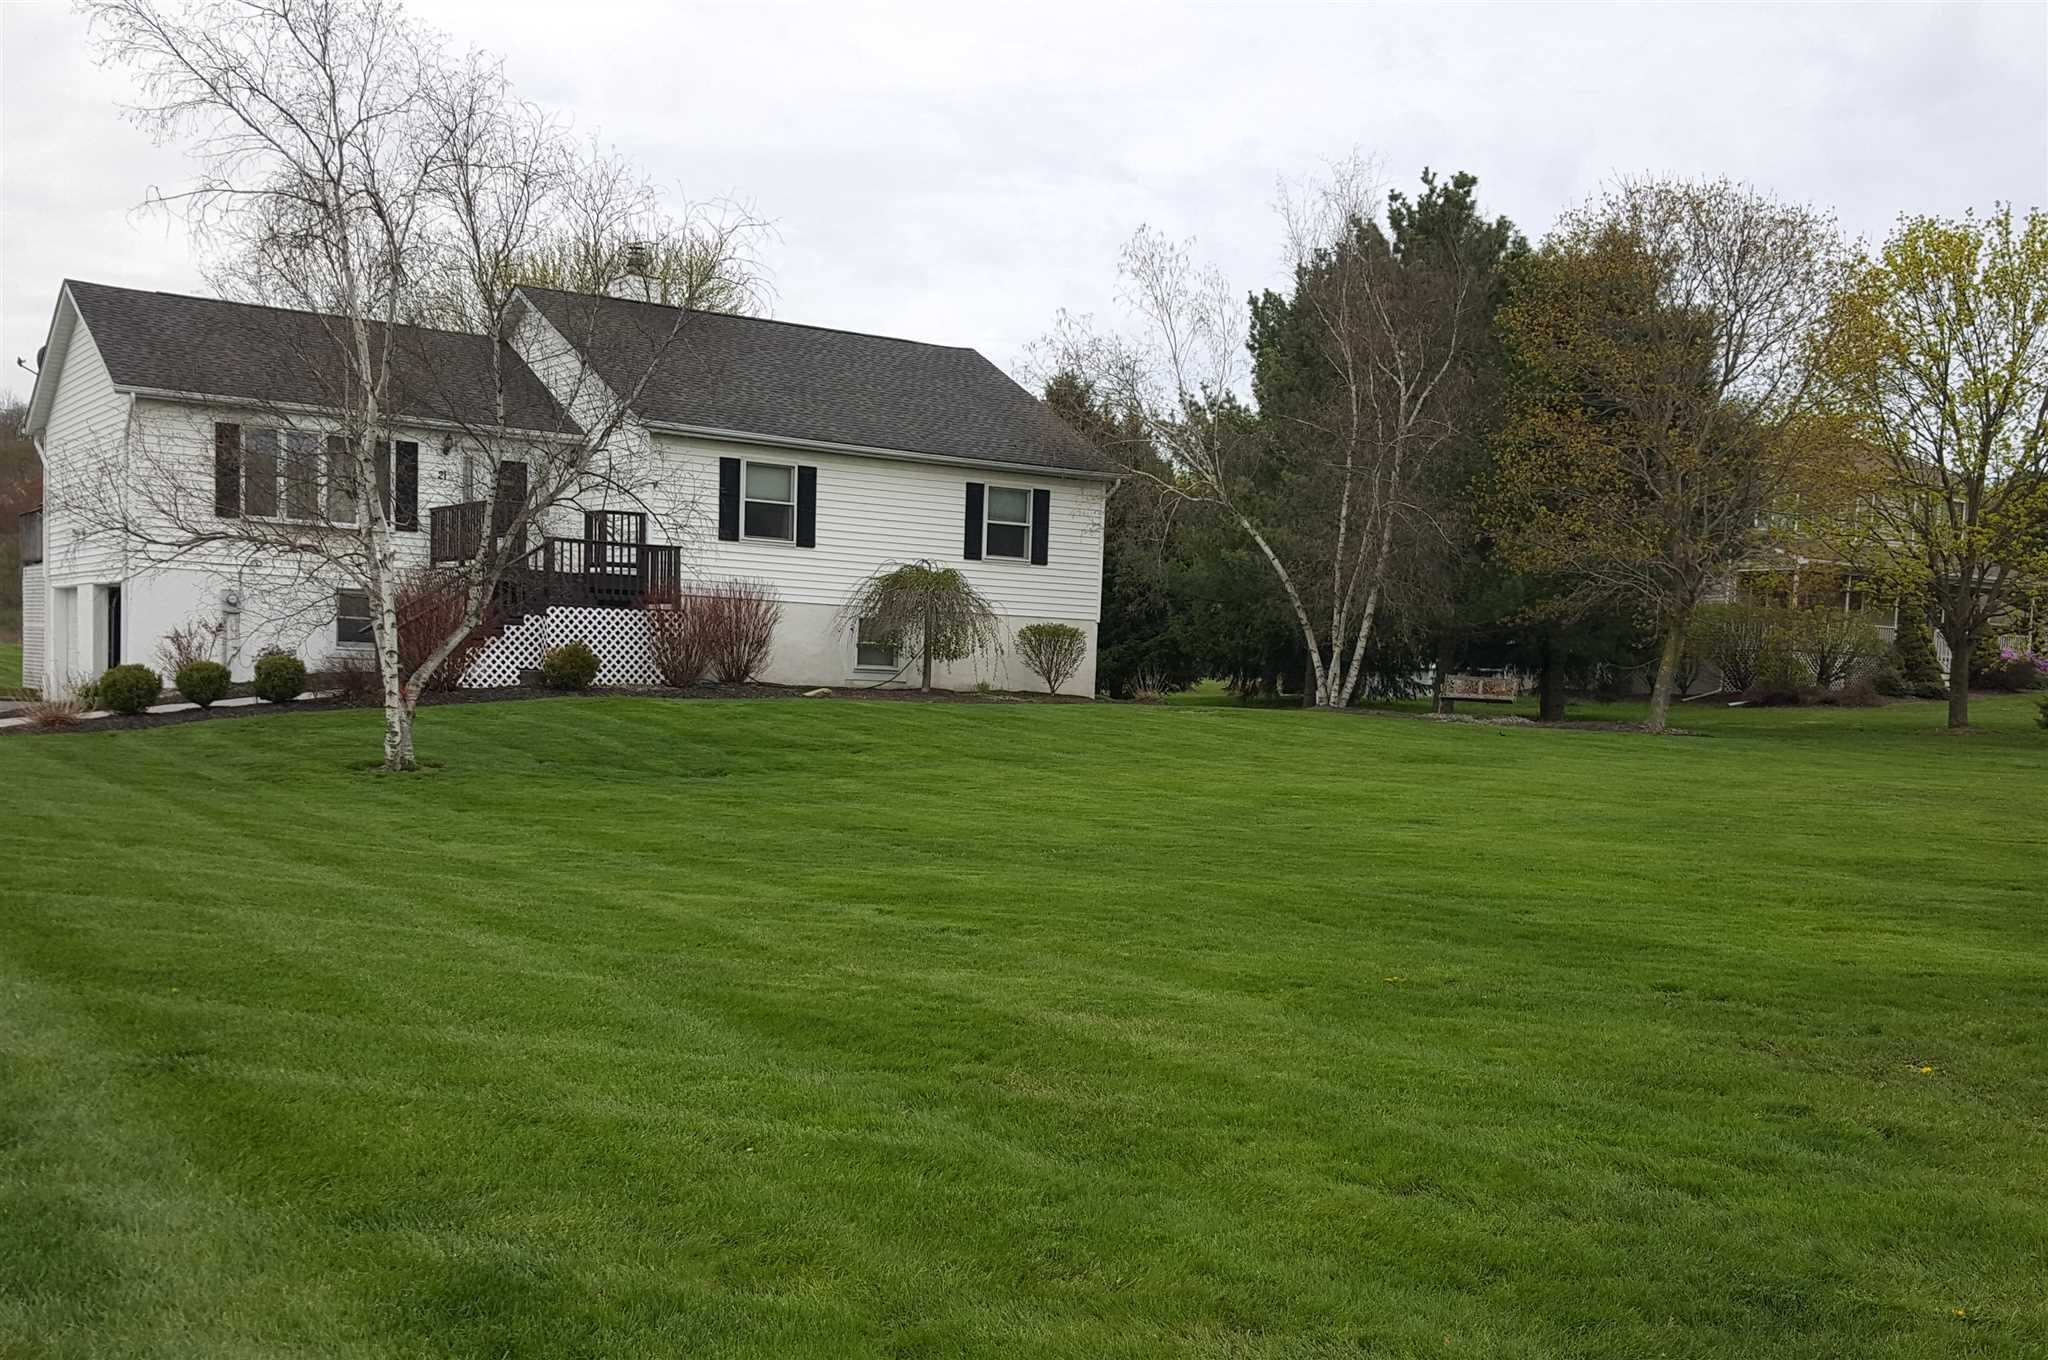 Single Family Home for Sale at 21 SMITH ROAD 21 SMITH ROAD Pleasant Valley, New York 12569 United States